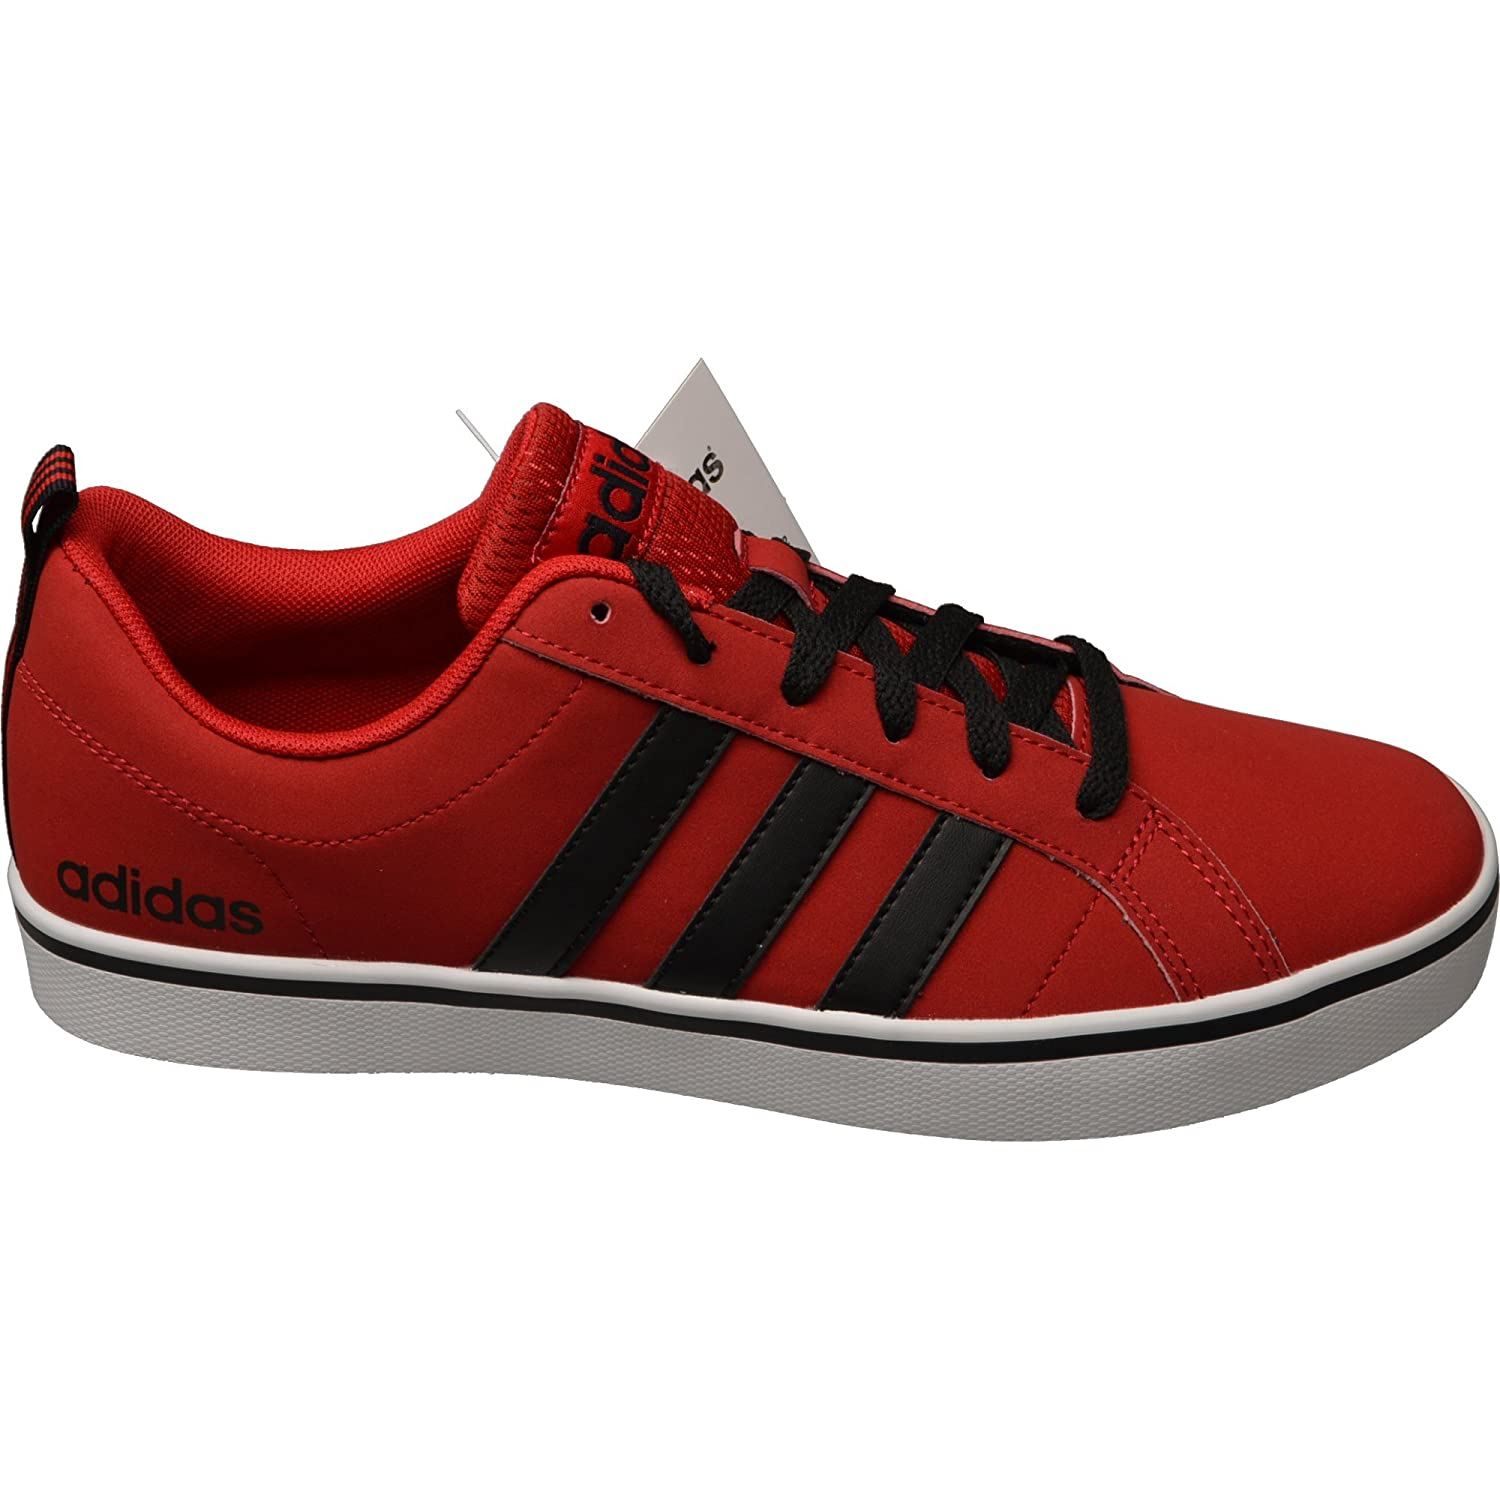 buy popular fcfbf 80711 adidas neo Men s Pace Vs Power Red, Core Black and Ftwr White Sneakers - 10  UK  Buy Online at Low Prices in India - Amazon.in